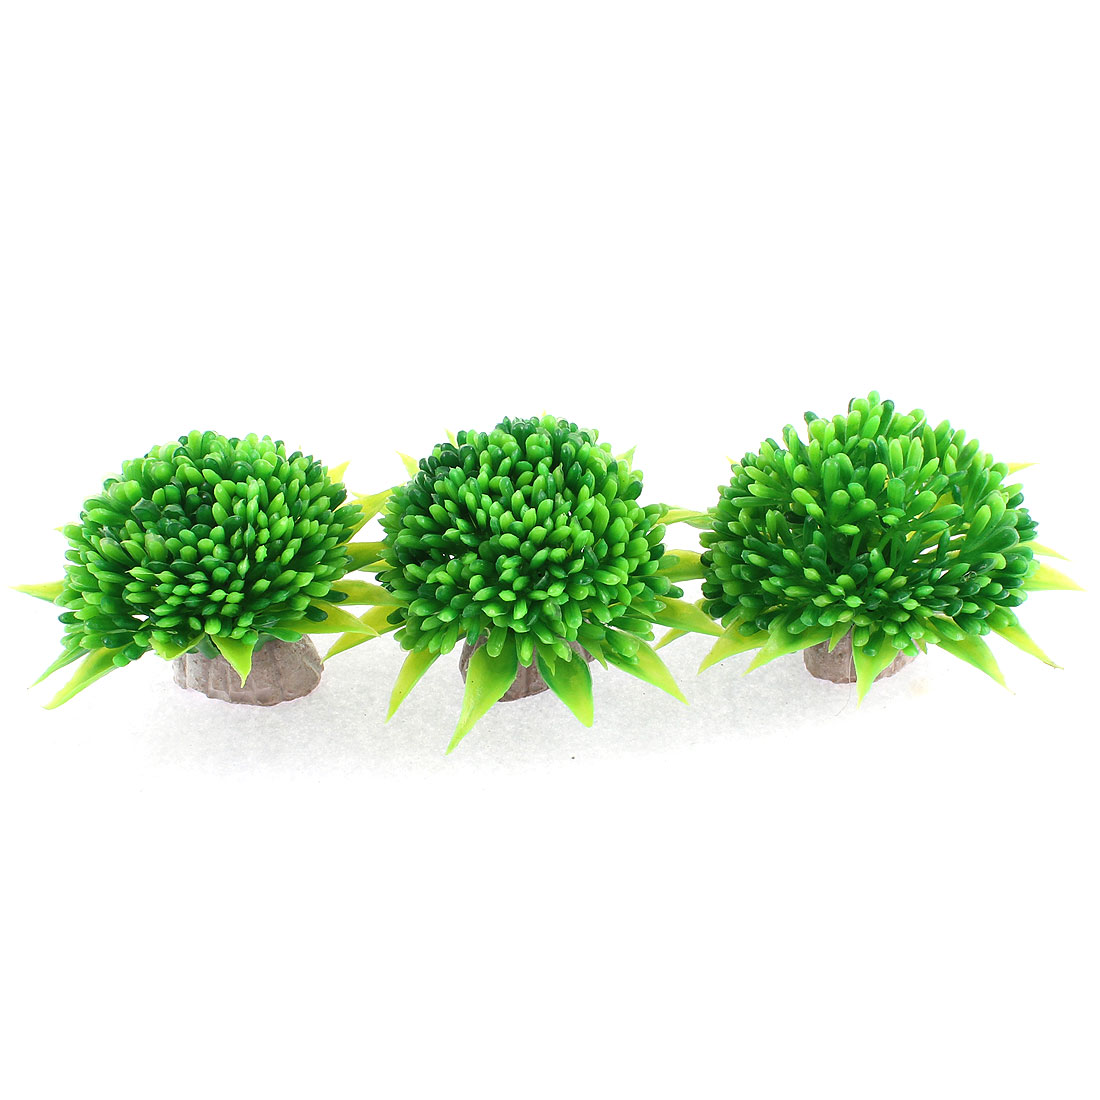 Artificial Plastic Water Plant Grass Green 8.5cm Dia 3 Pcs for Aquarium